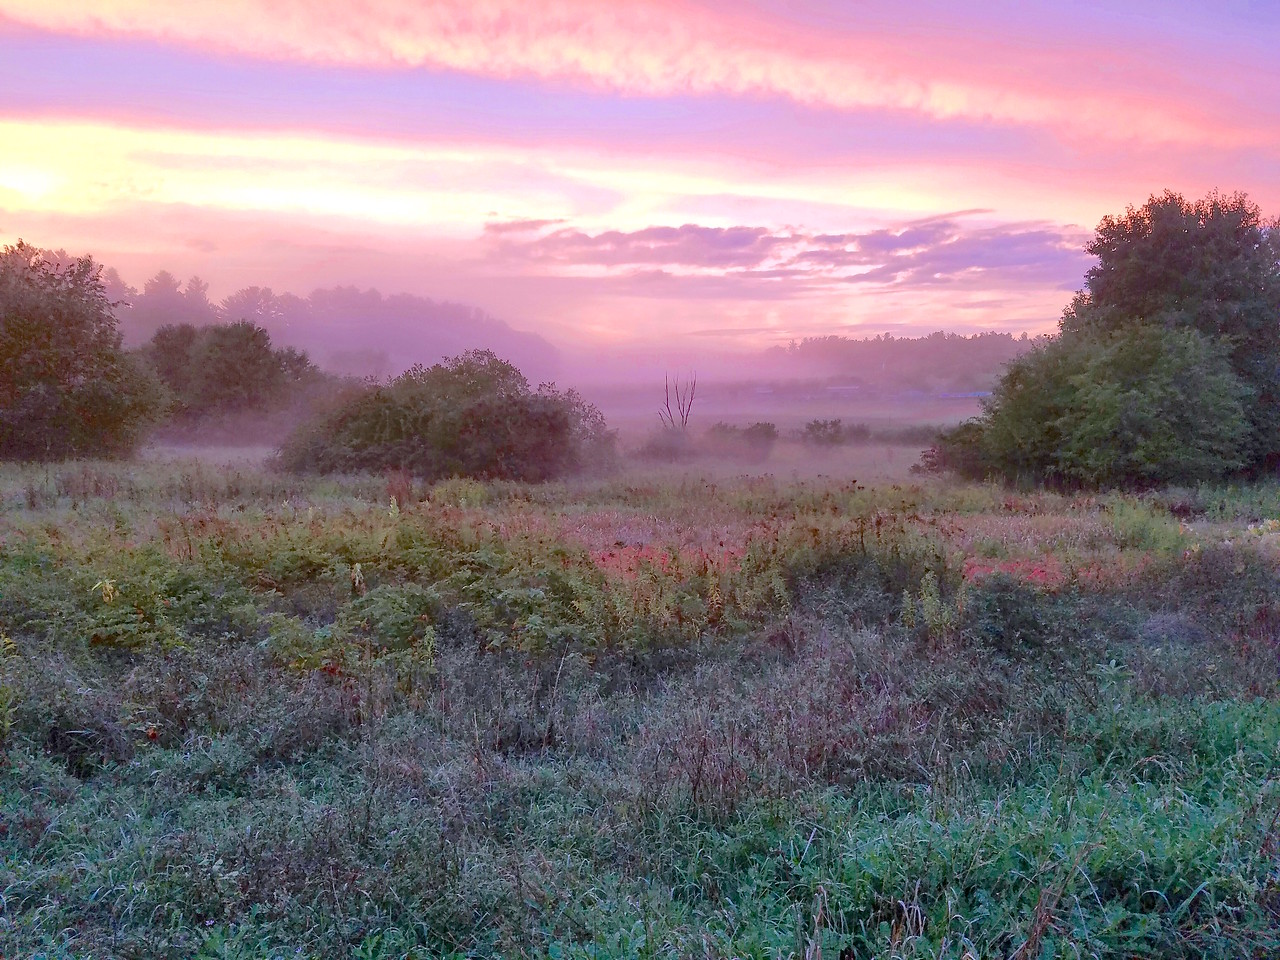 Sunrise at Heath Hen Meadow Brook, Stow, Massachusetts